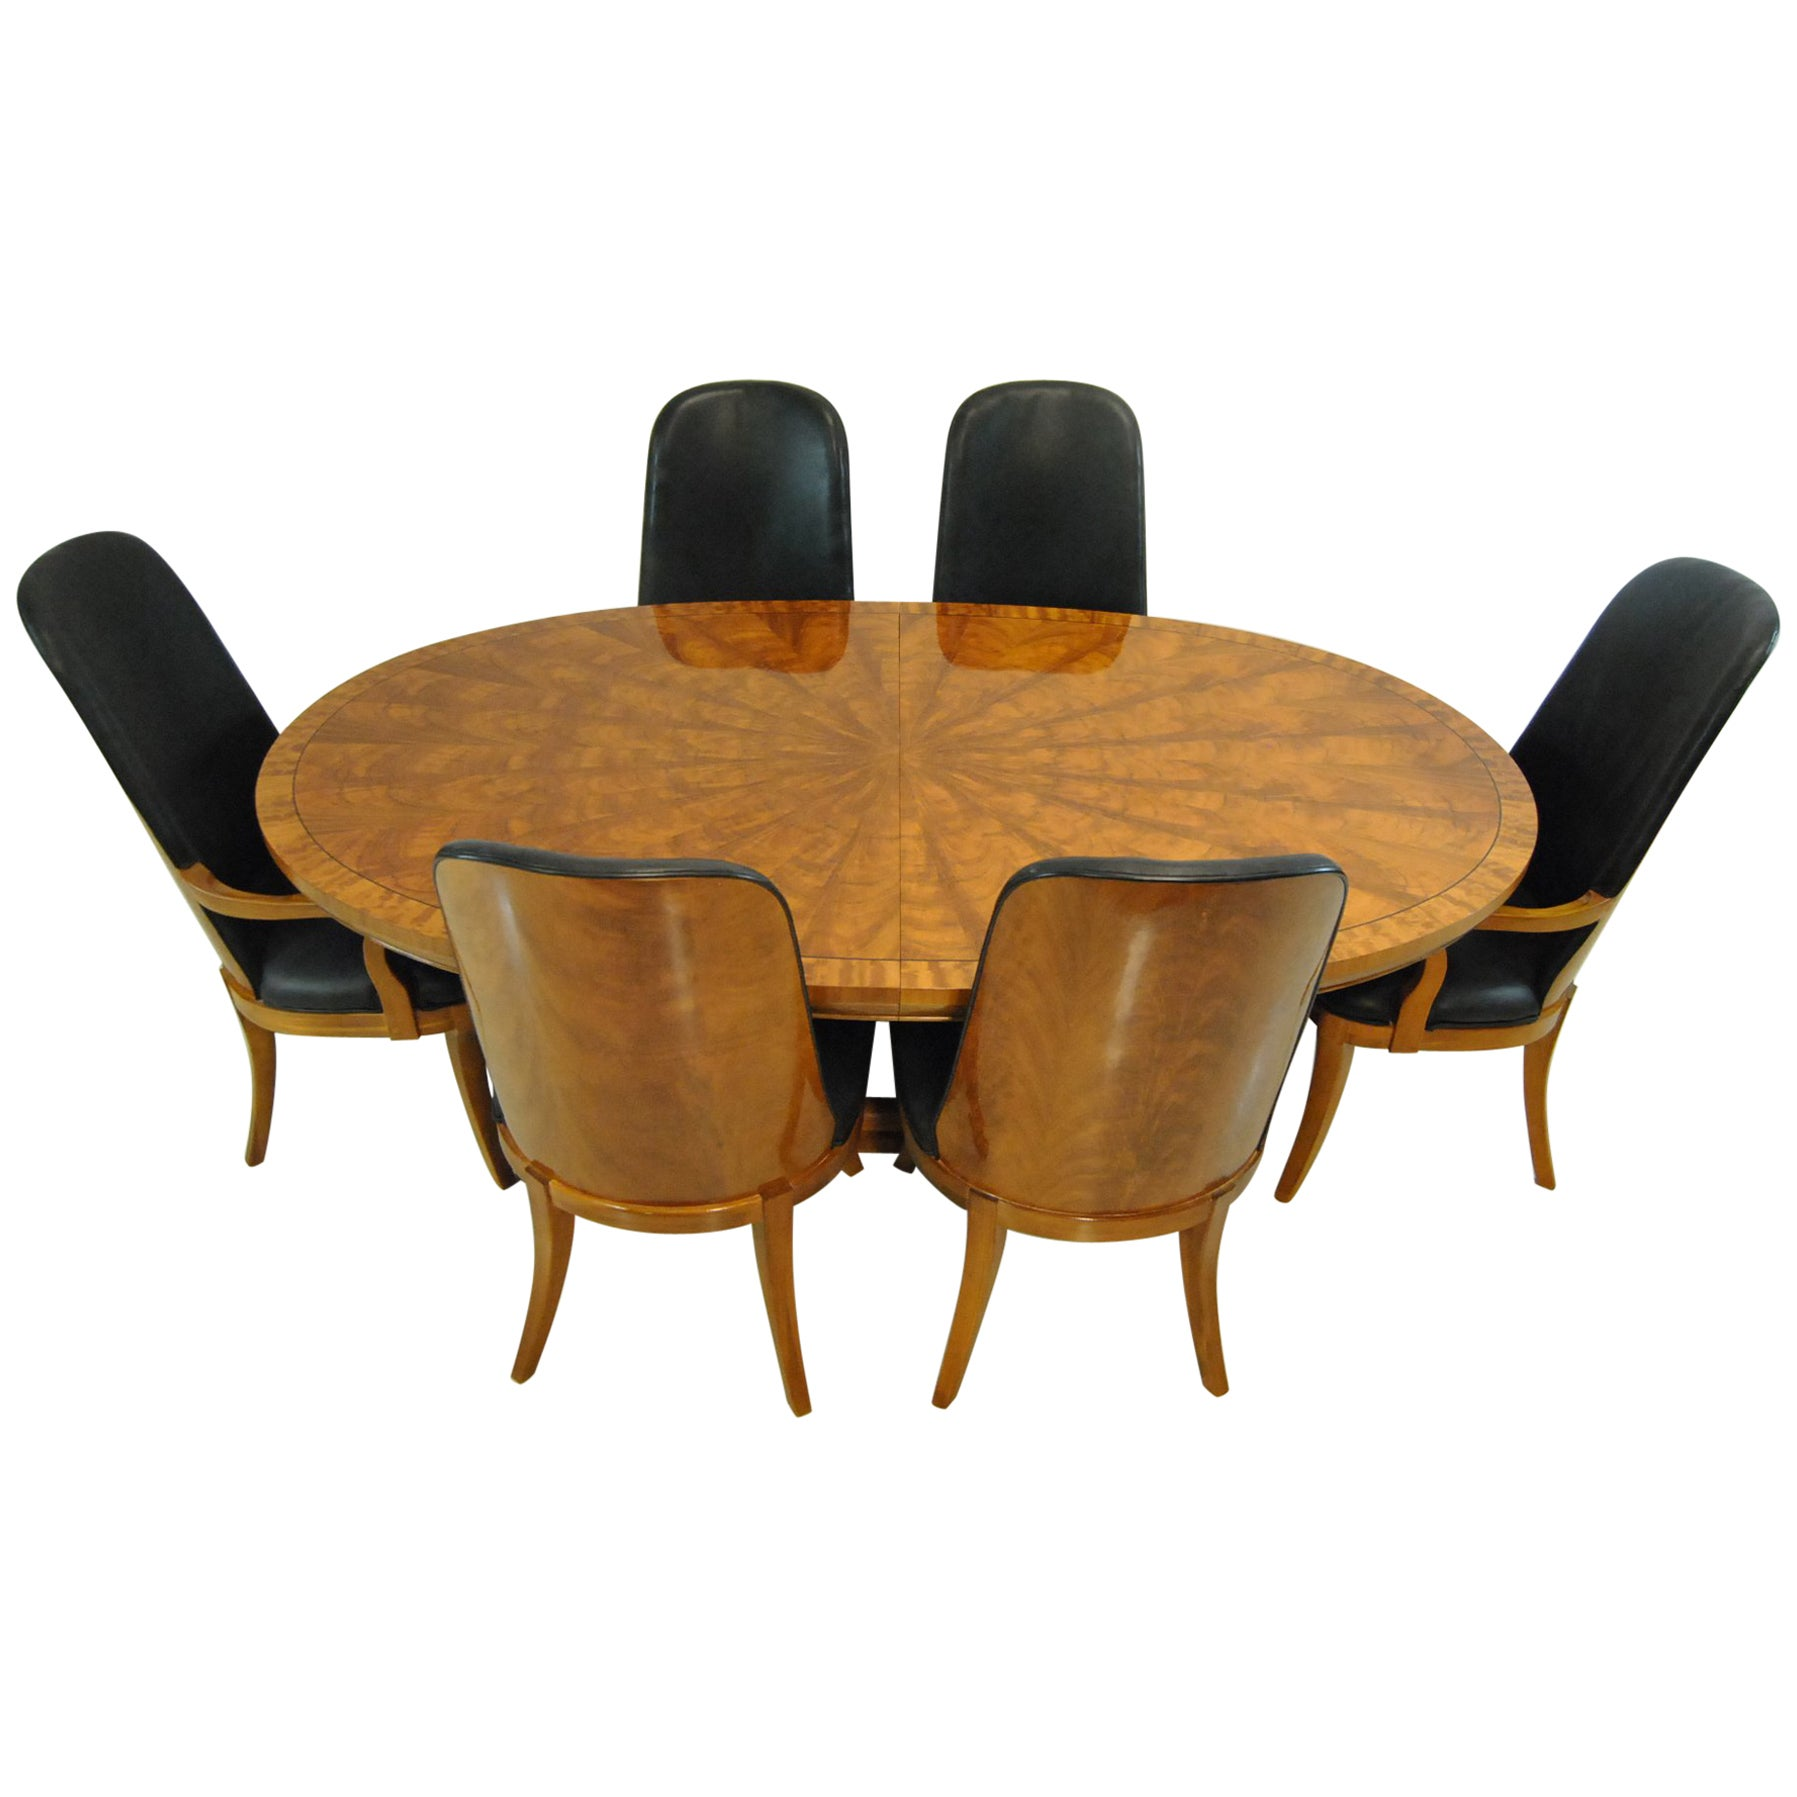 Starburst Double Pedestal Dining Table with Six Chairs by Henredon